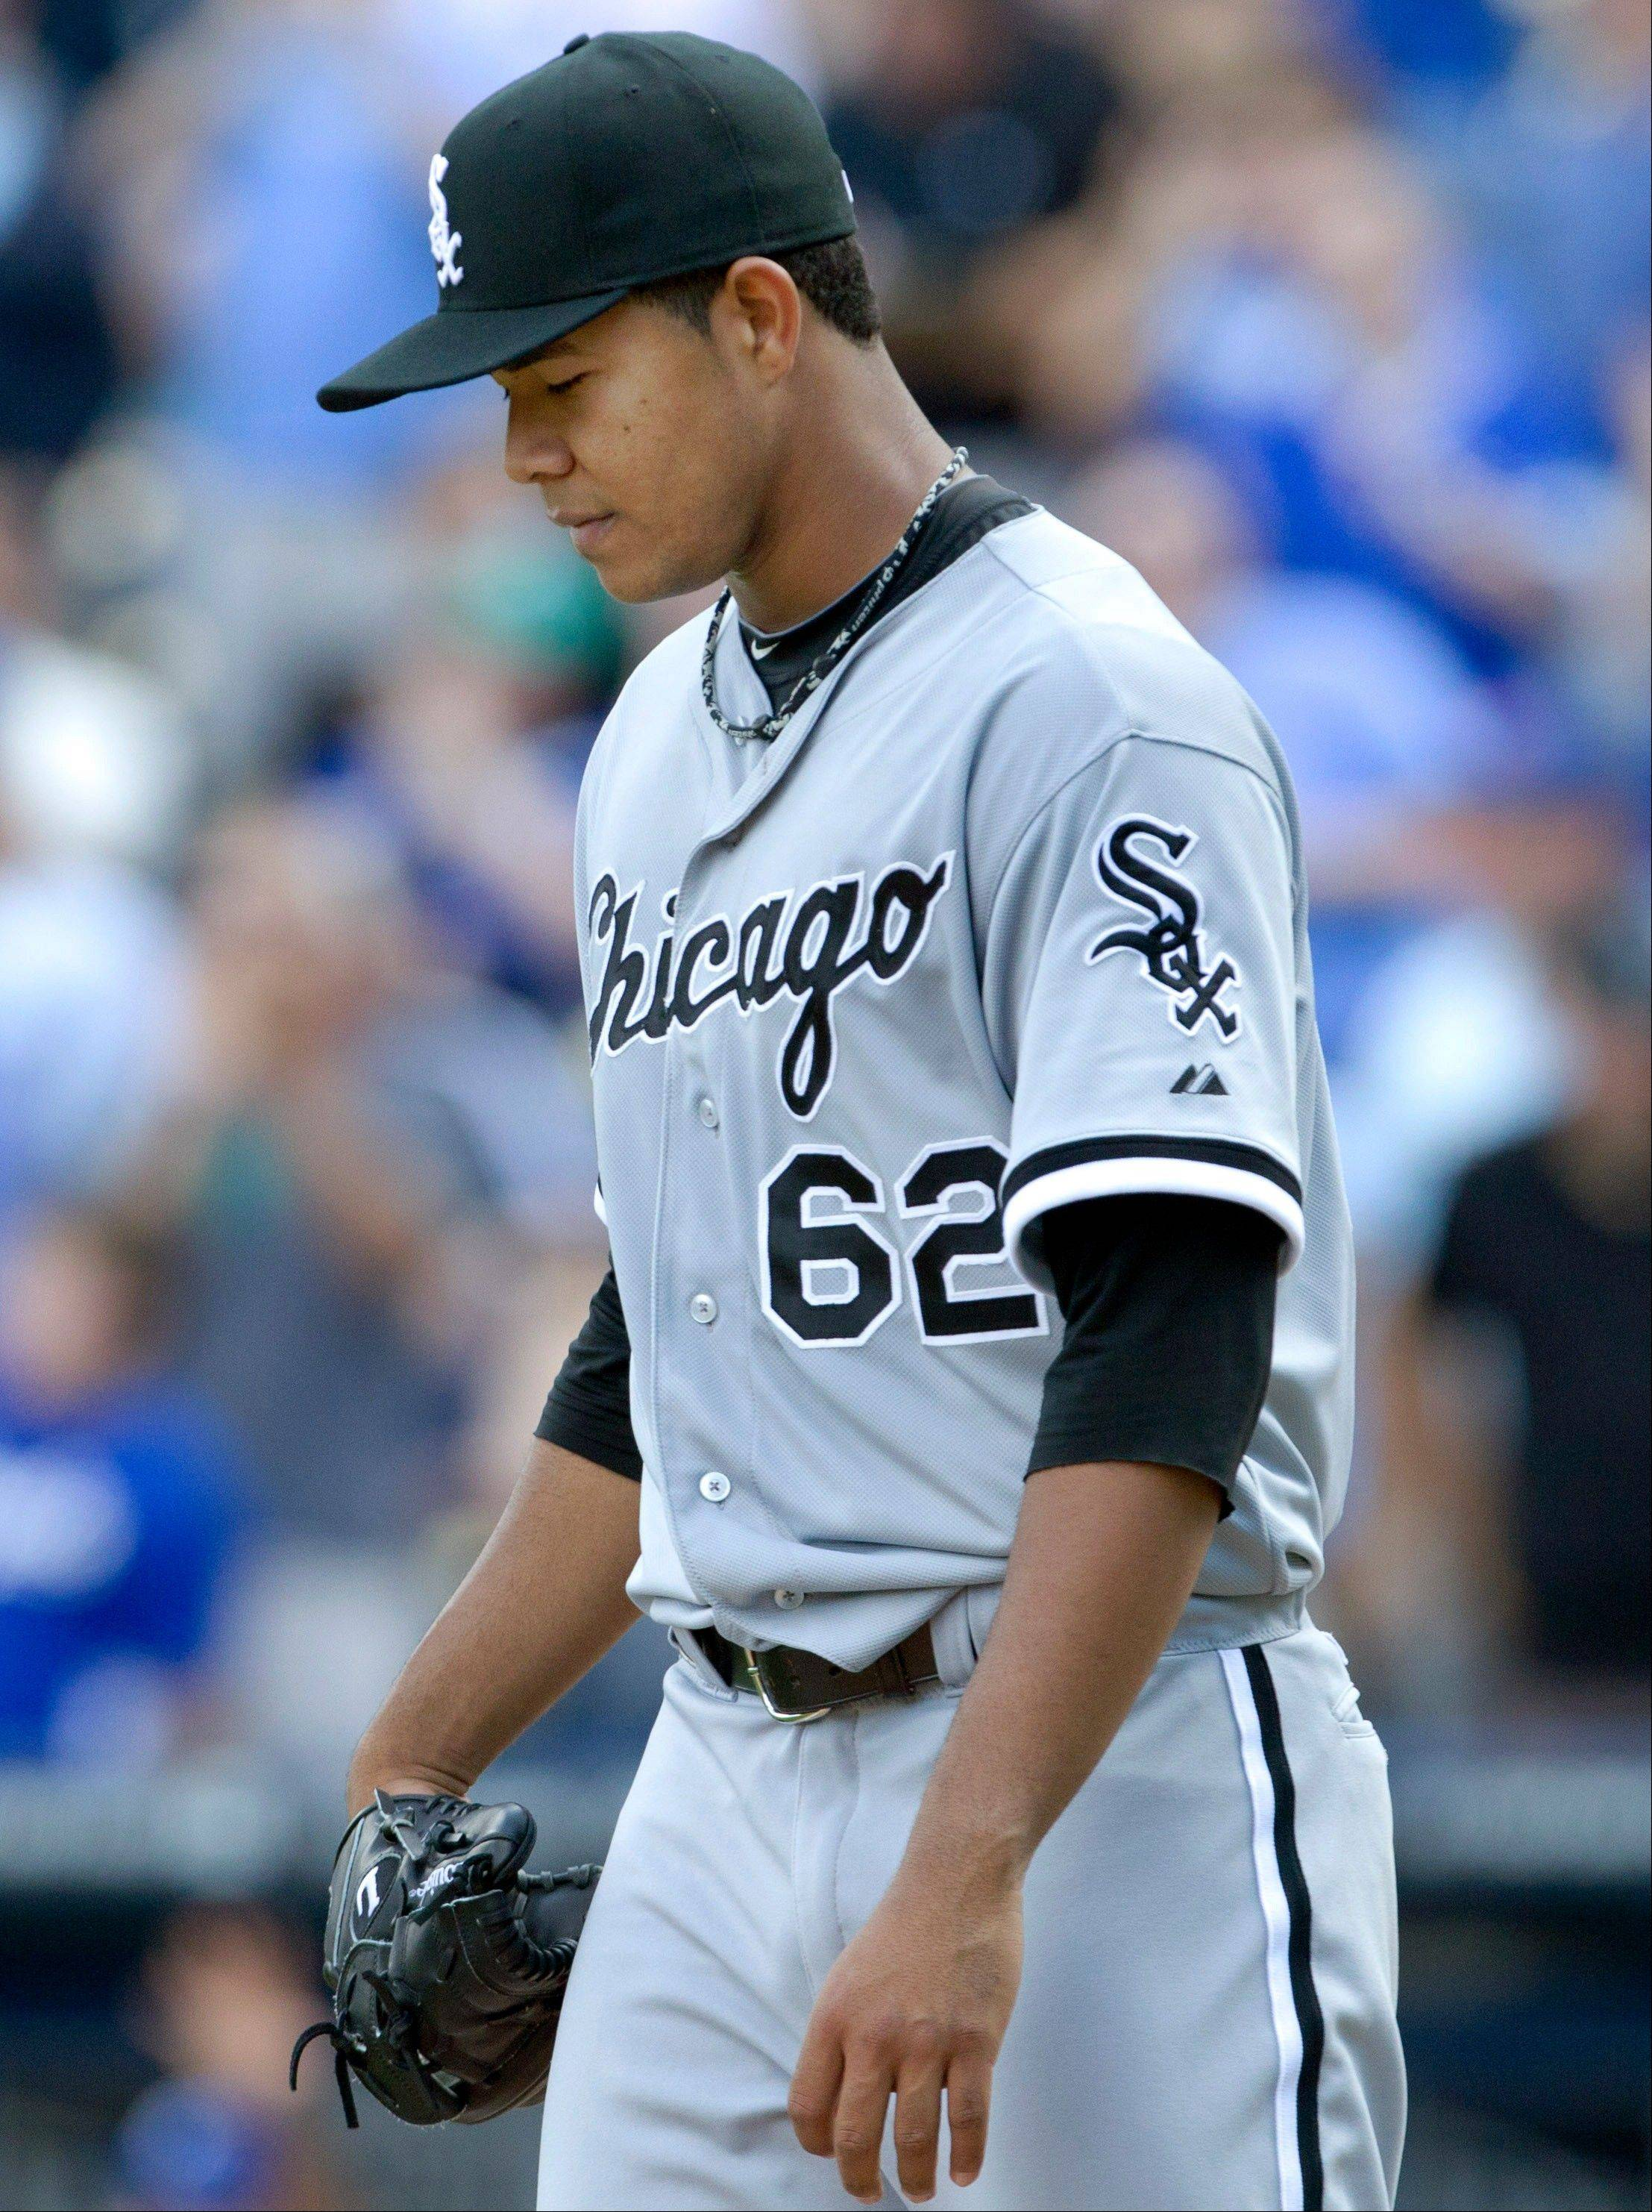 White Sox starting pitcher Jose Quintana walks to the mound Sunday after giving up a two-run double in sixth inning in Kansas City.